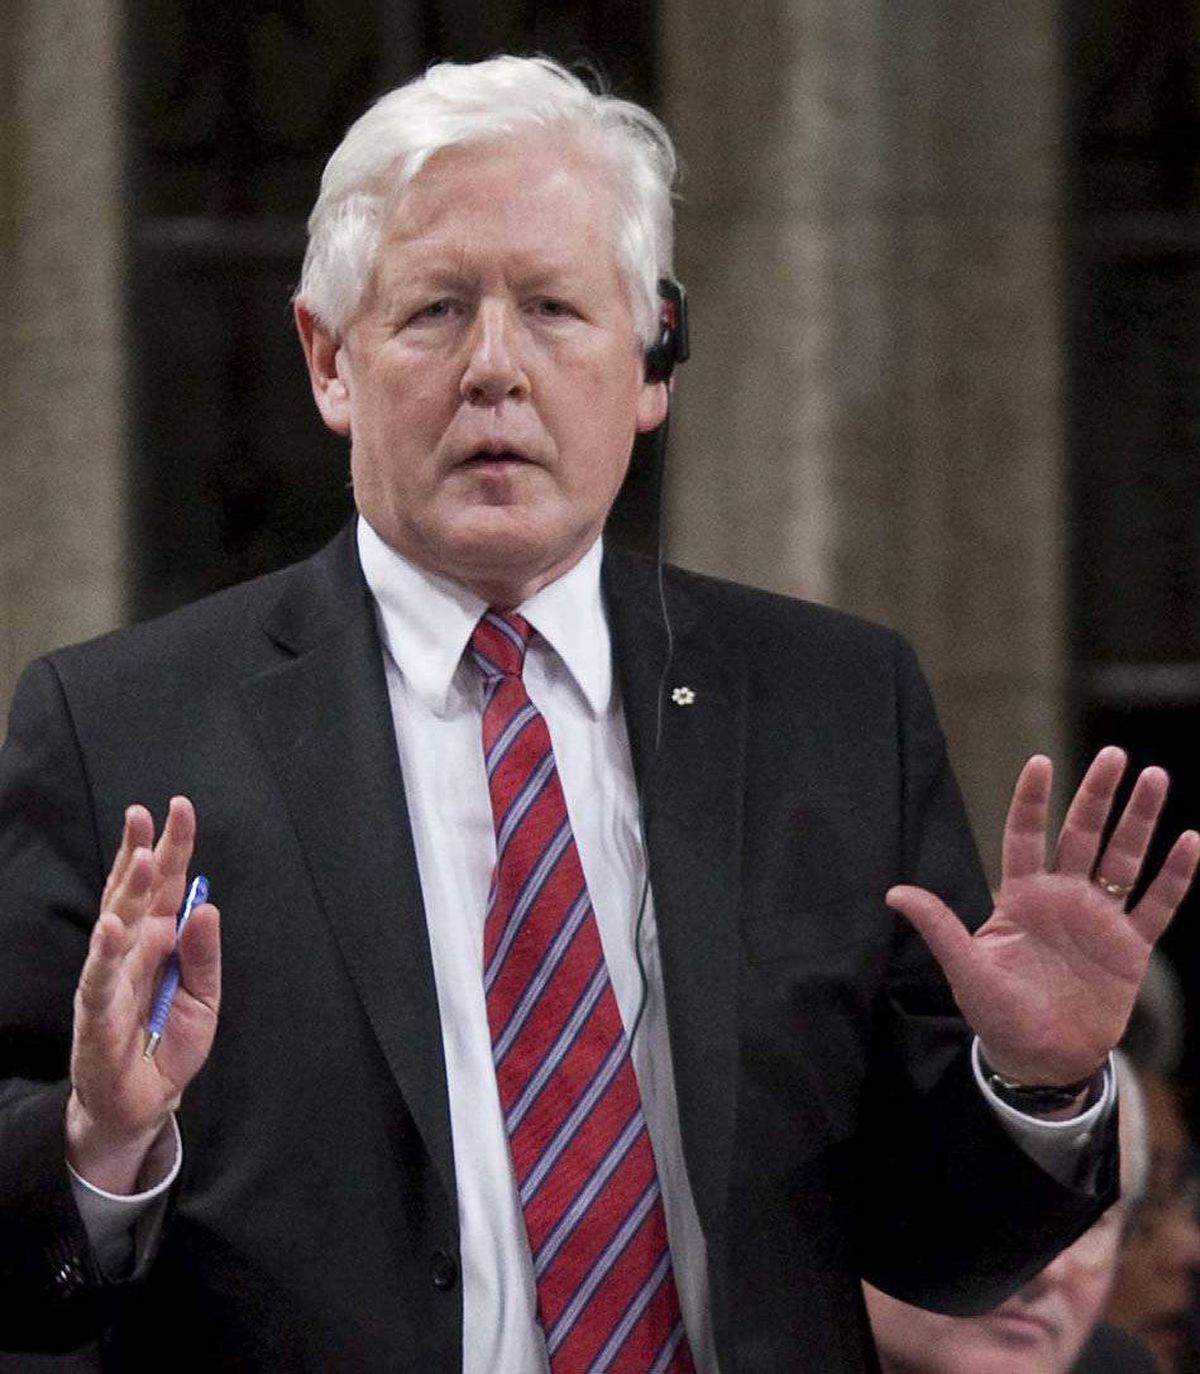 """Let me explain,"" says Interim Liberal Leader Bob Rae. ""Someone made automated phone calls to Liberal voters during the last election directing them to the wrong polling station or, worse, called late at night and identified themselves as Liberals and were rude."""